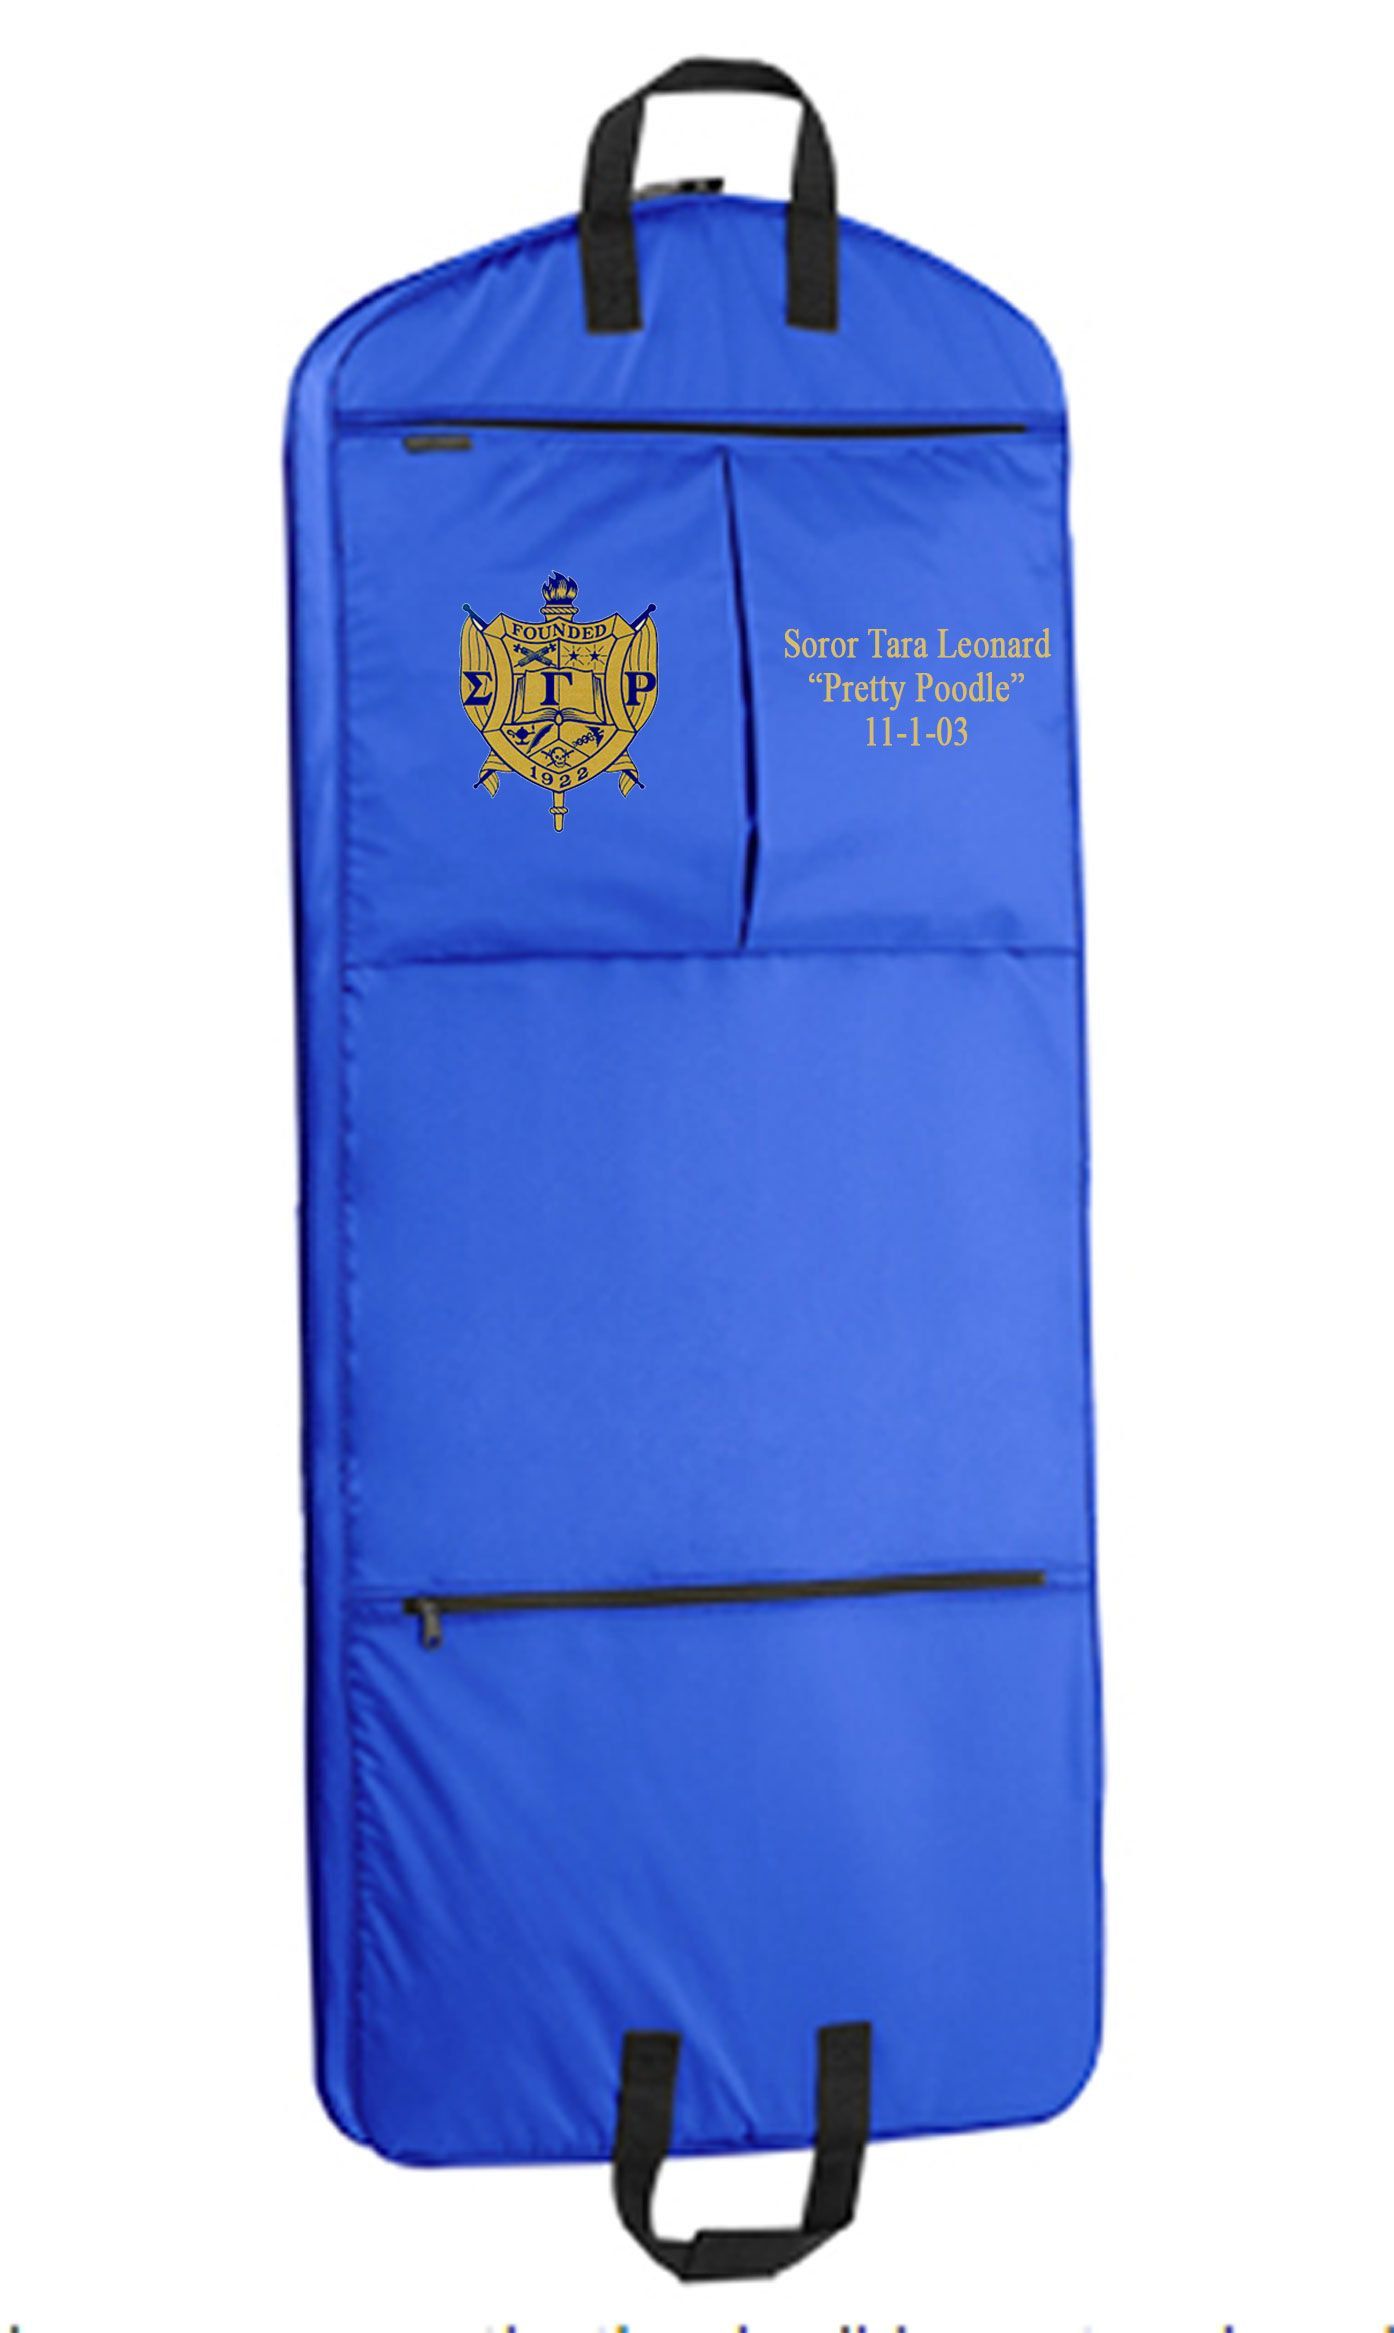 PERSONALIZED GARMENT BAG-SGRho | SGRho | Pinterest